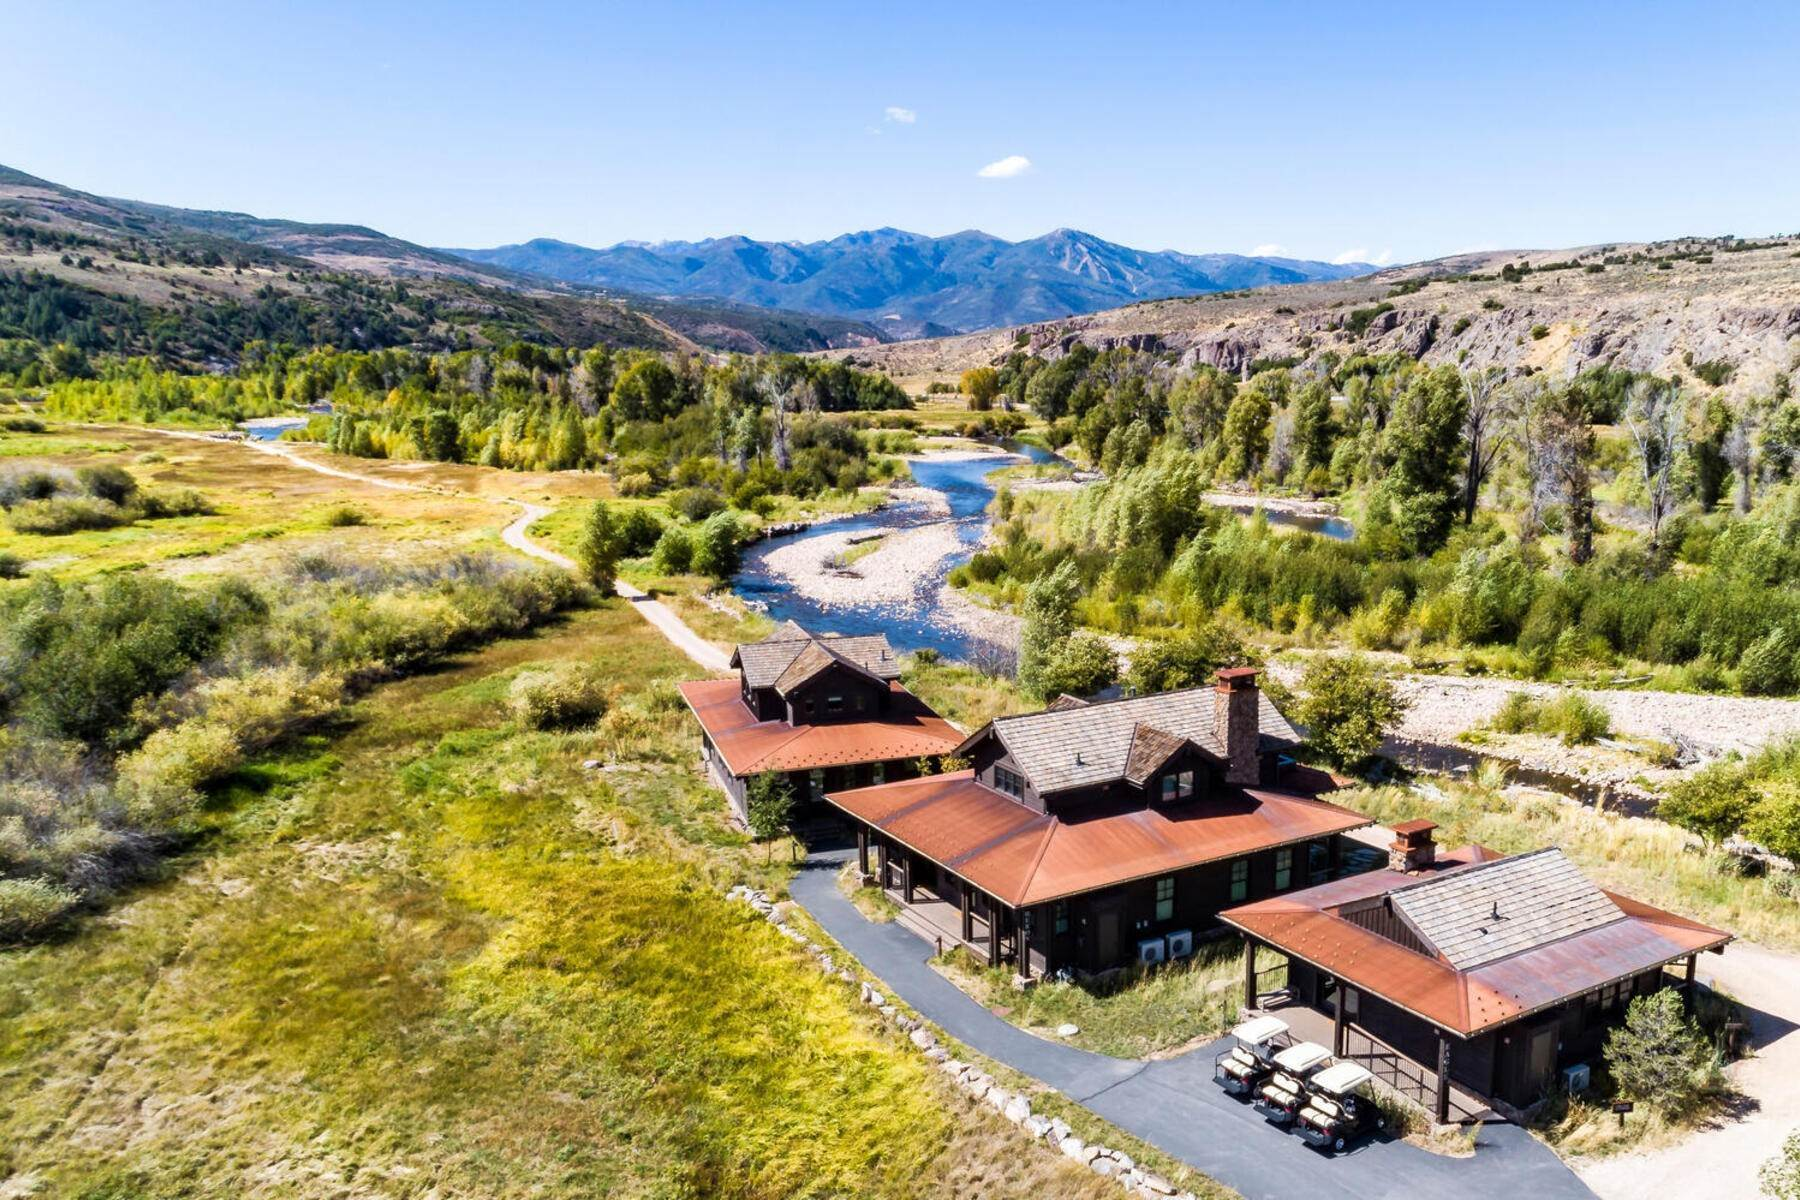 10. fractional ownership prop for Sale at 1/8 Fractional Ownership Opportunity In Brand New Kingfisher Cabin 7615 E Stardust Court #319E, 5.13 Heber City, Utah 84032 United States